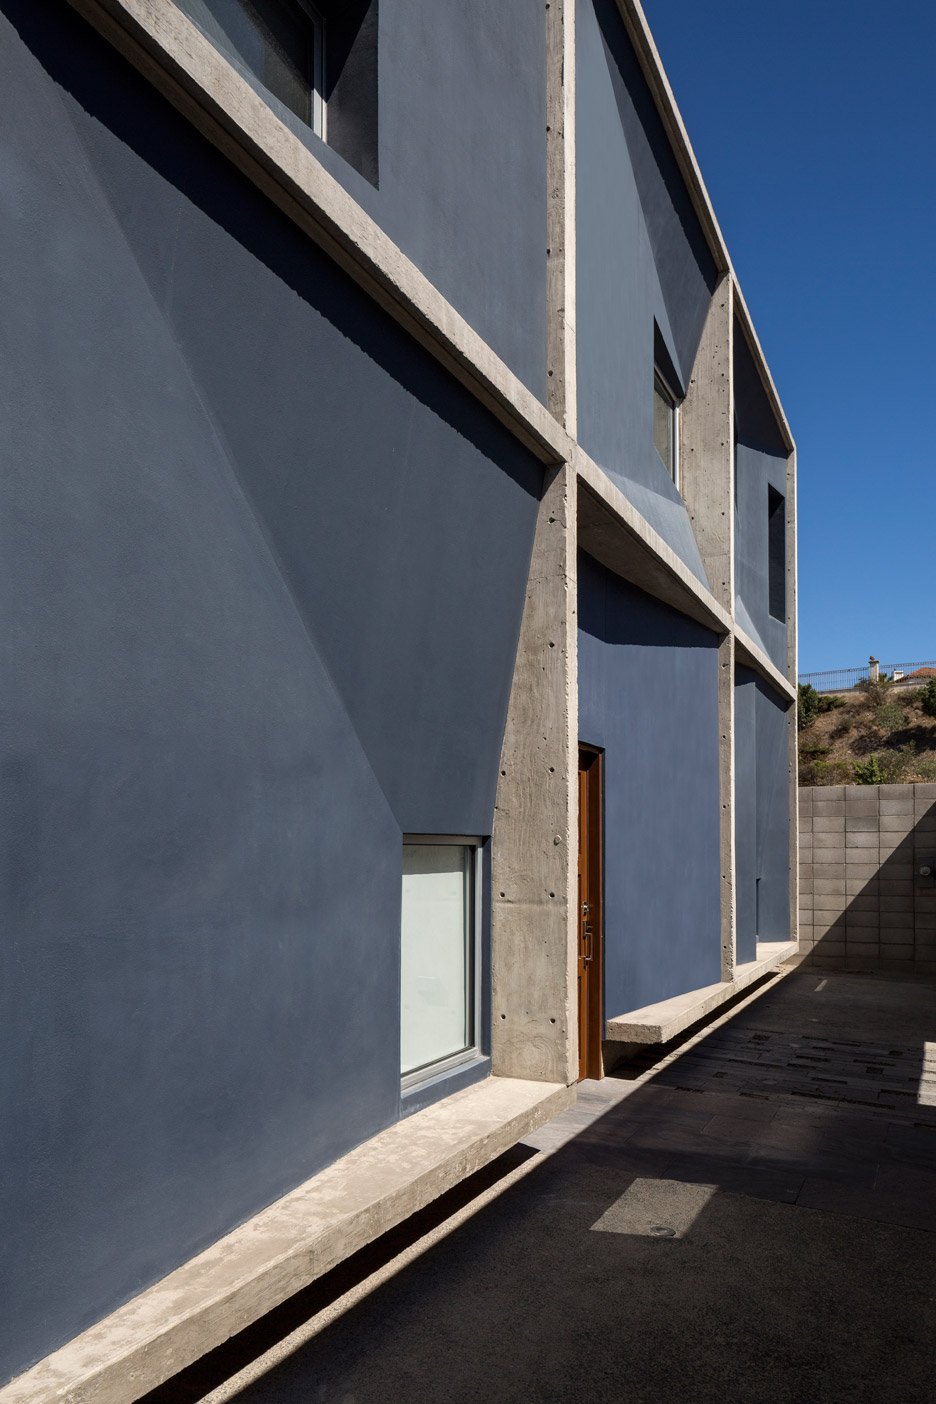 Courtyard house in Tijuana by T38 Studio is based on a nine-square grid